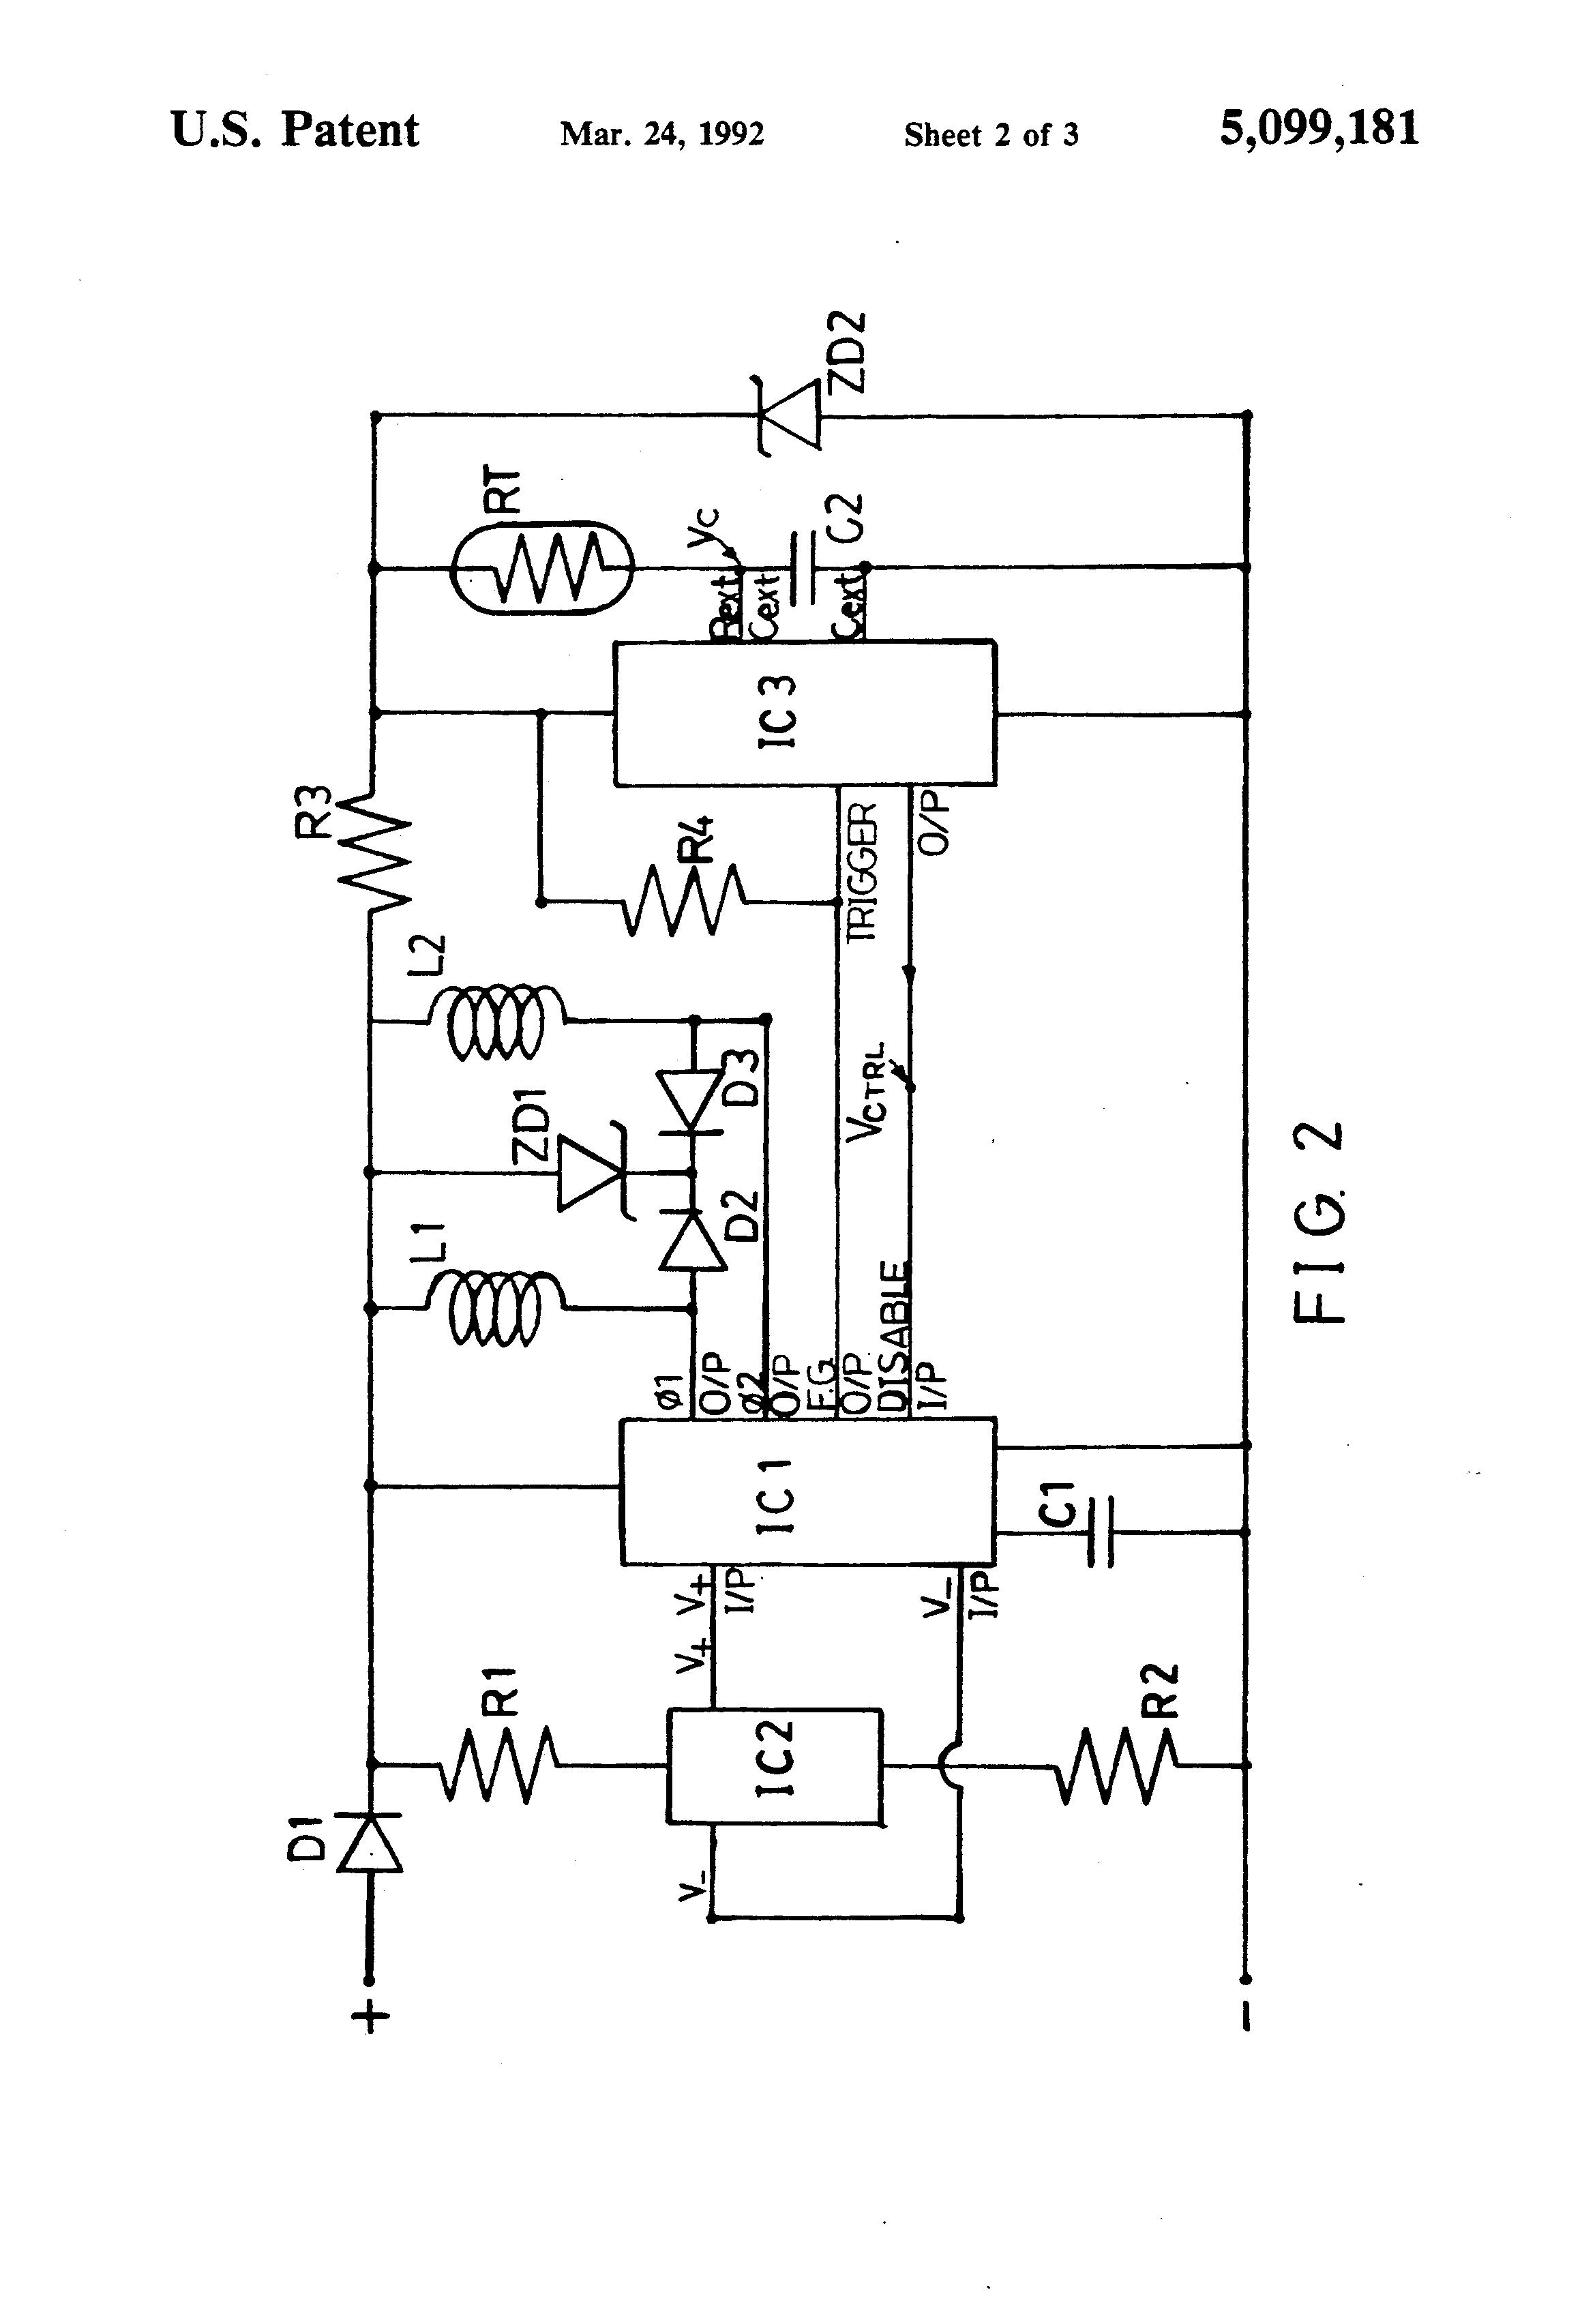 Wiring Diagram For The Motor